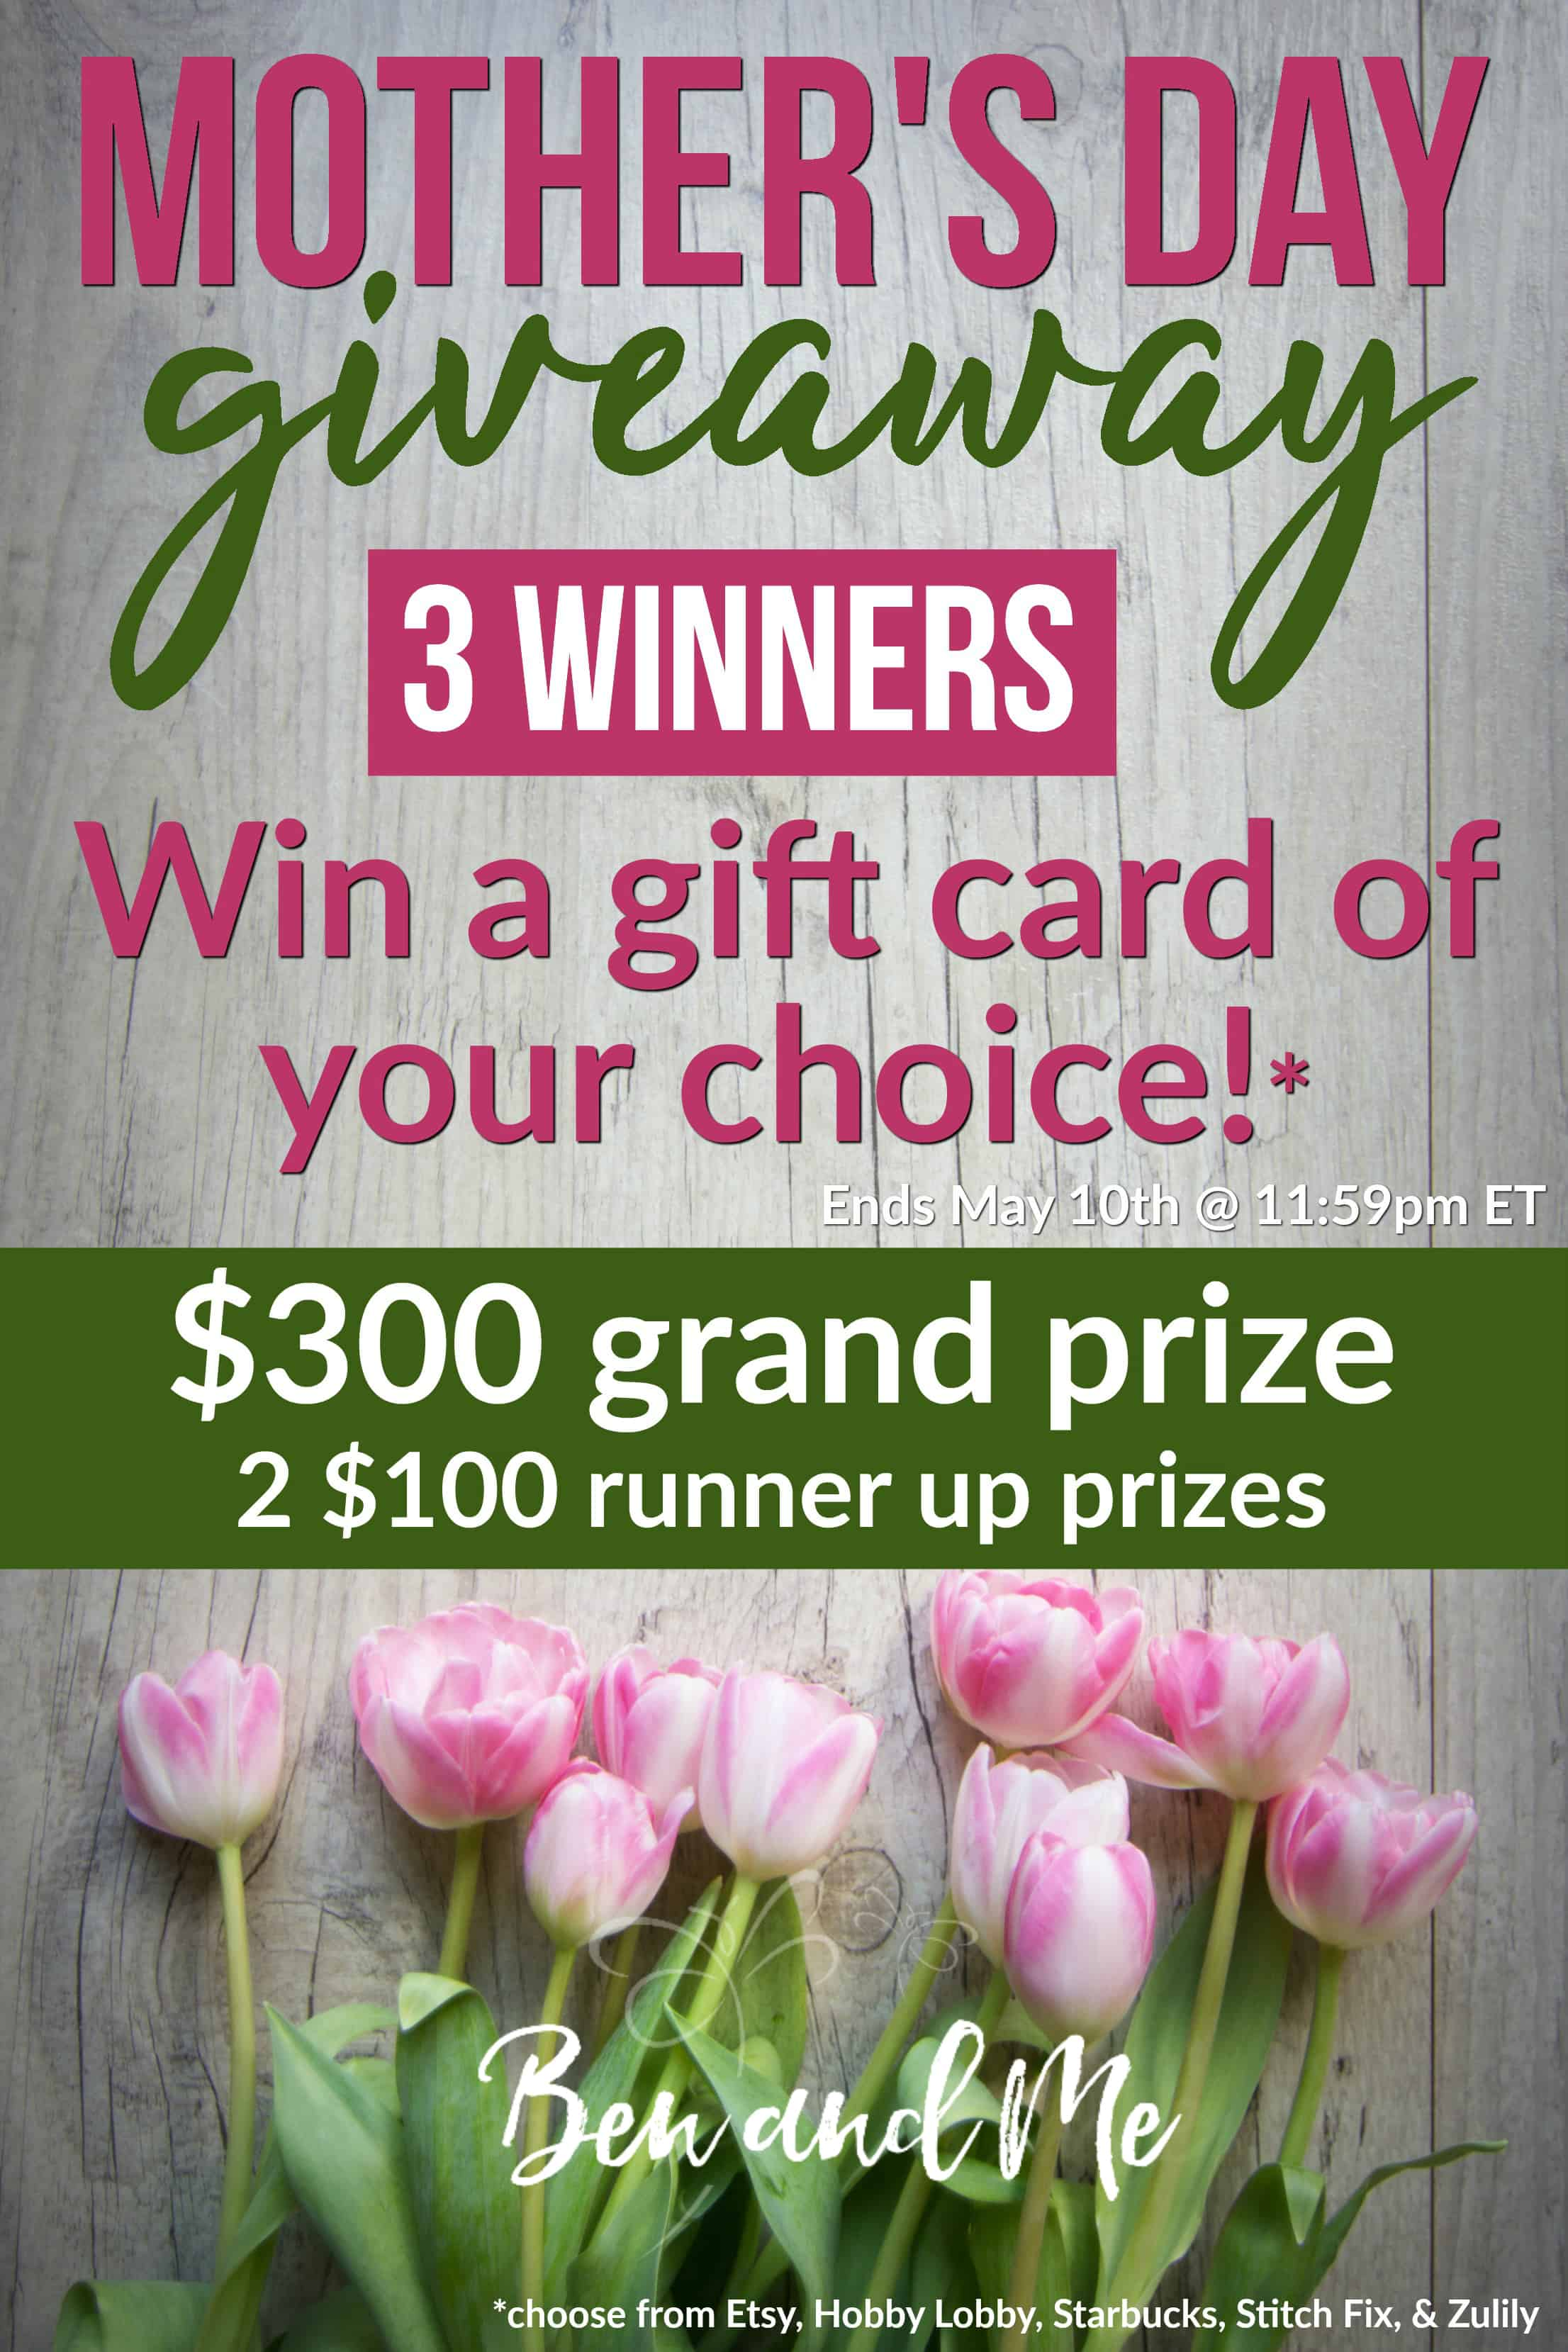 There will be THREE winners in this Mother's Day giveaway - each winner getting to choose a gift card to the place of their choice. #mothersday #moms #giveaway